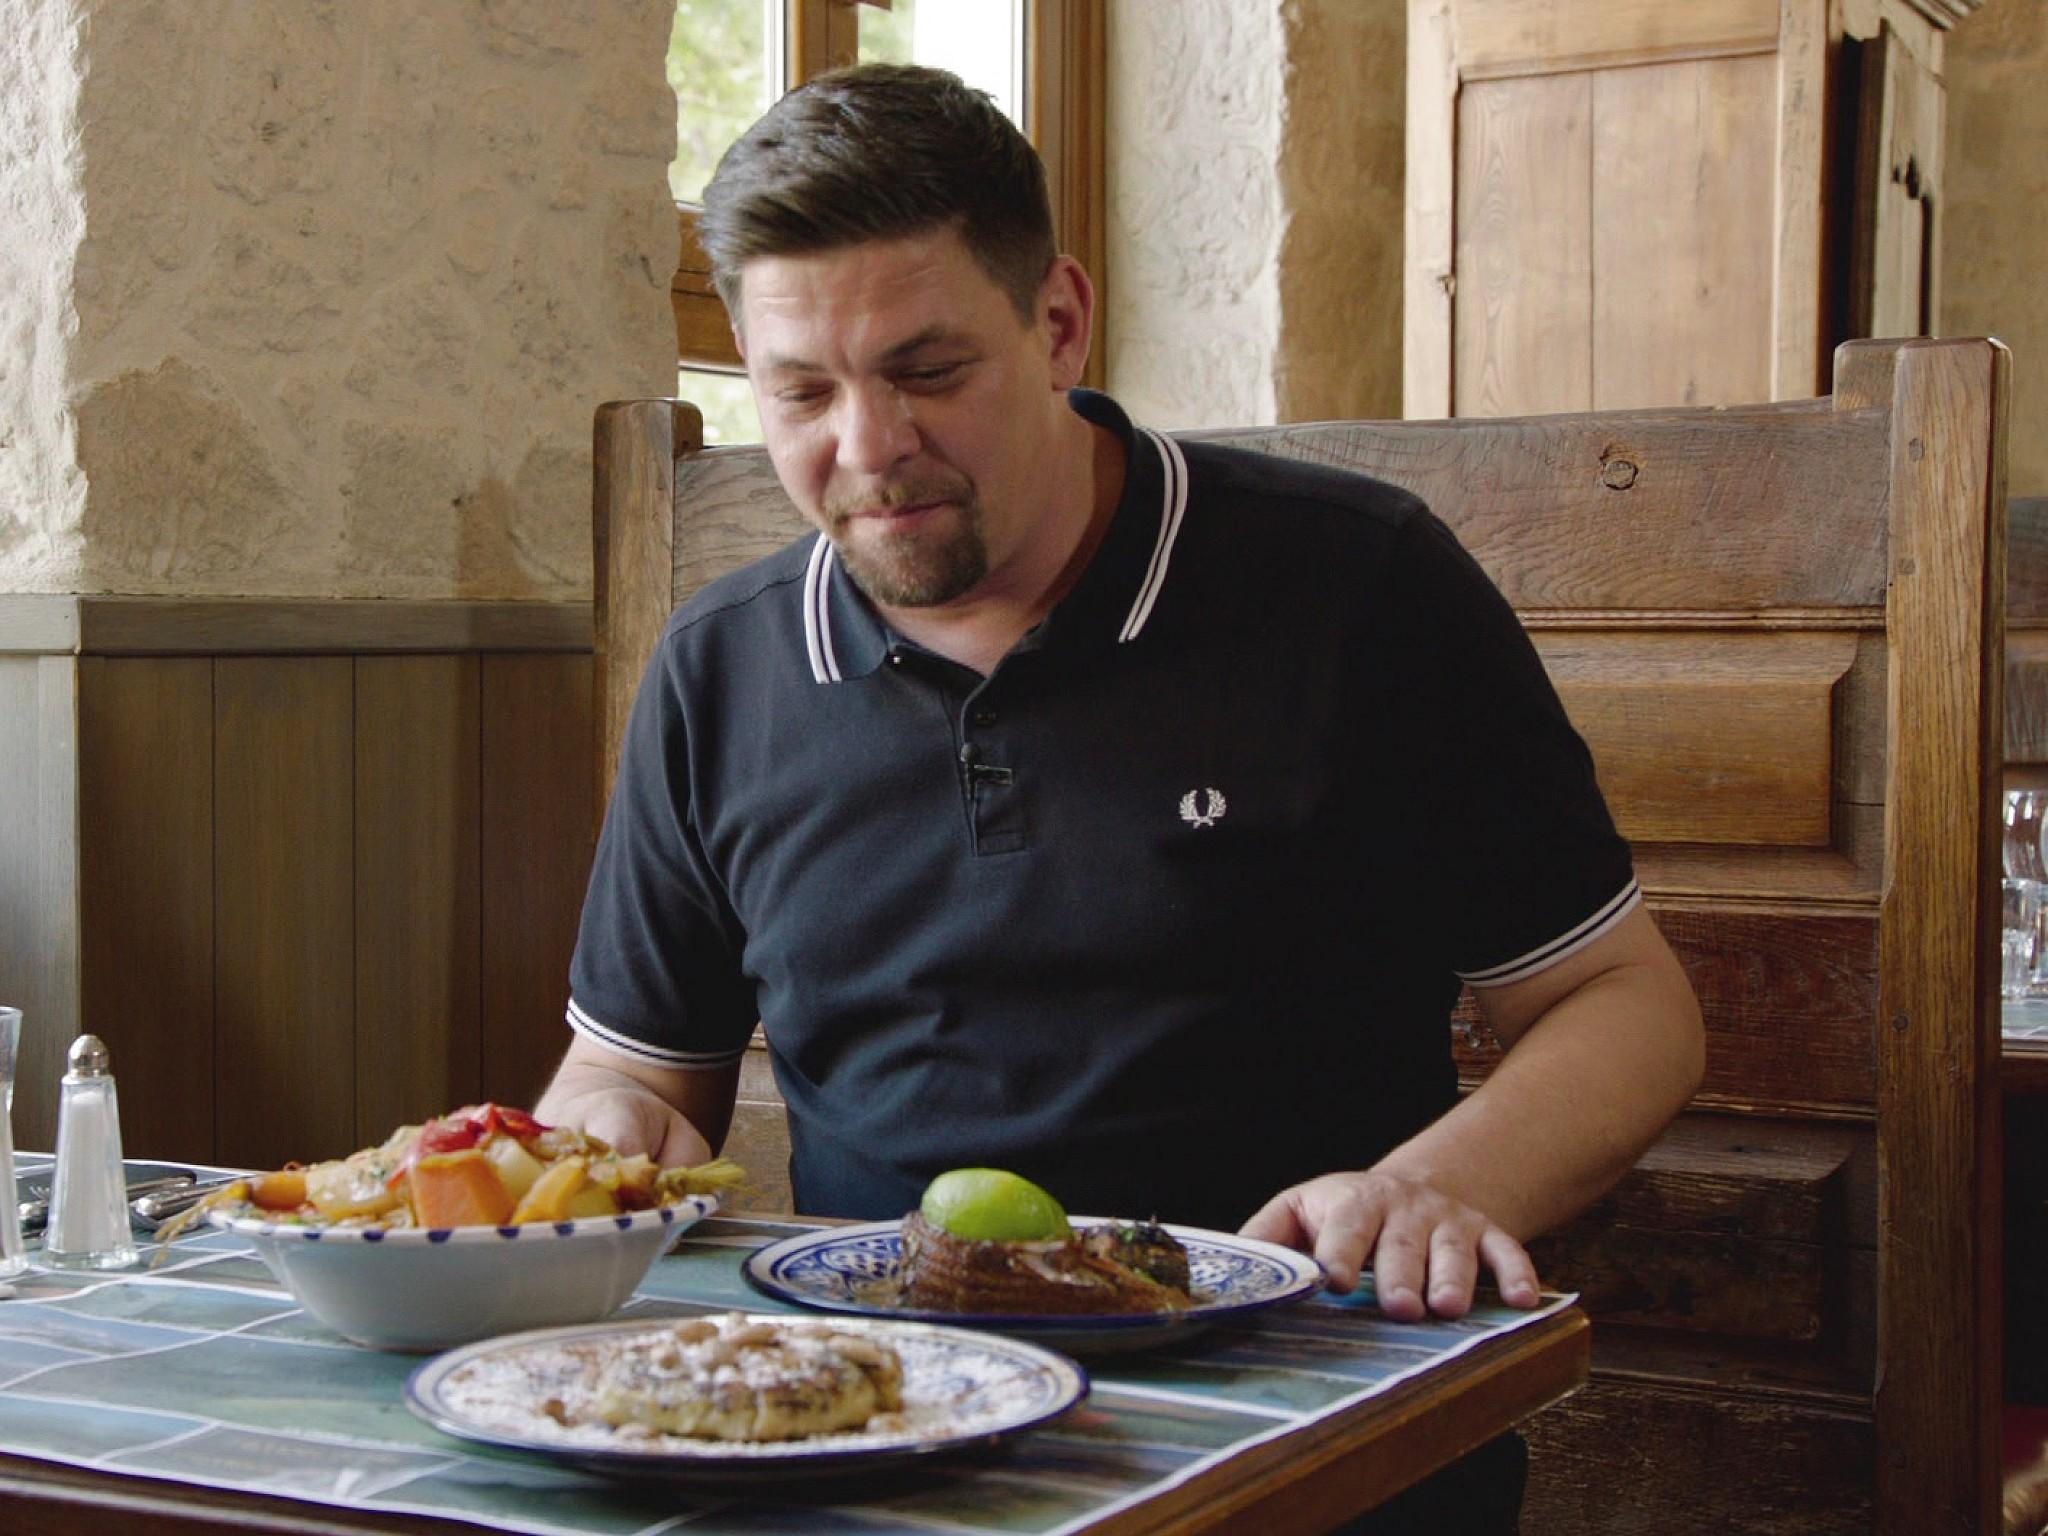 Kitchen Impossible - Staffel 1 - Folge 2 - Zutatenliste